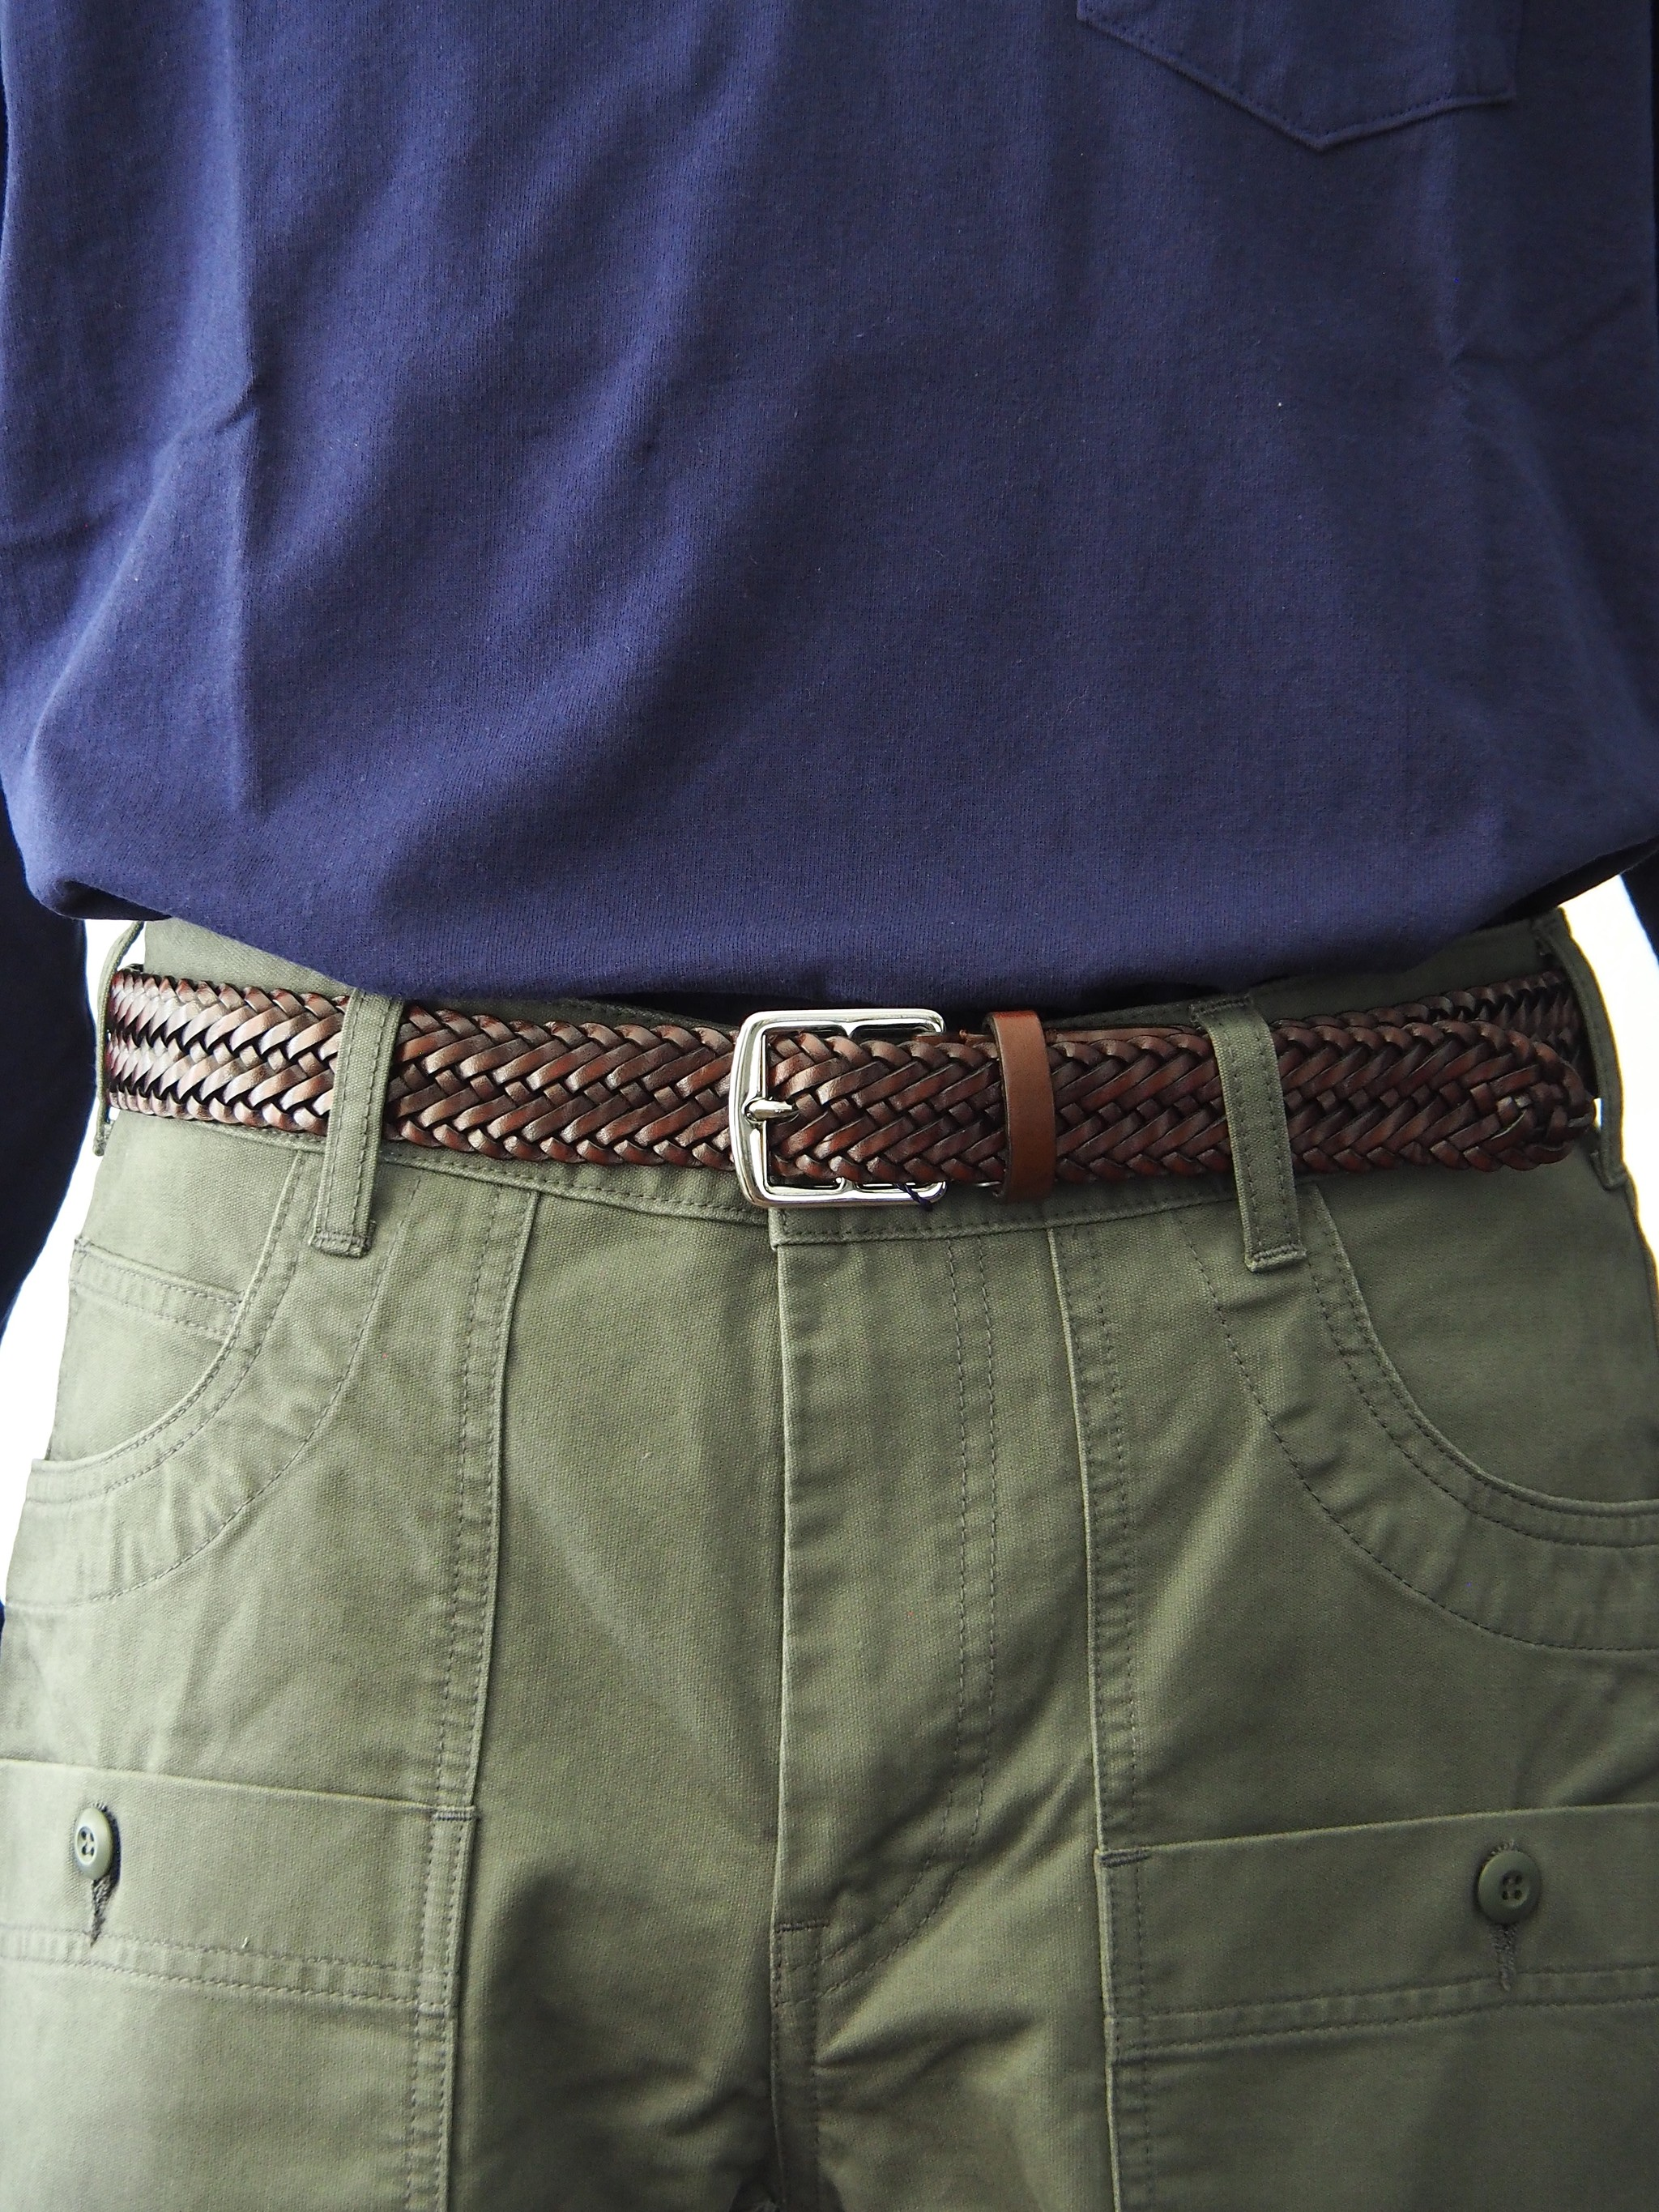 Anderson's Leather Mesh Belt Directors別注をご紹介します